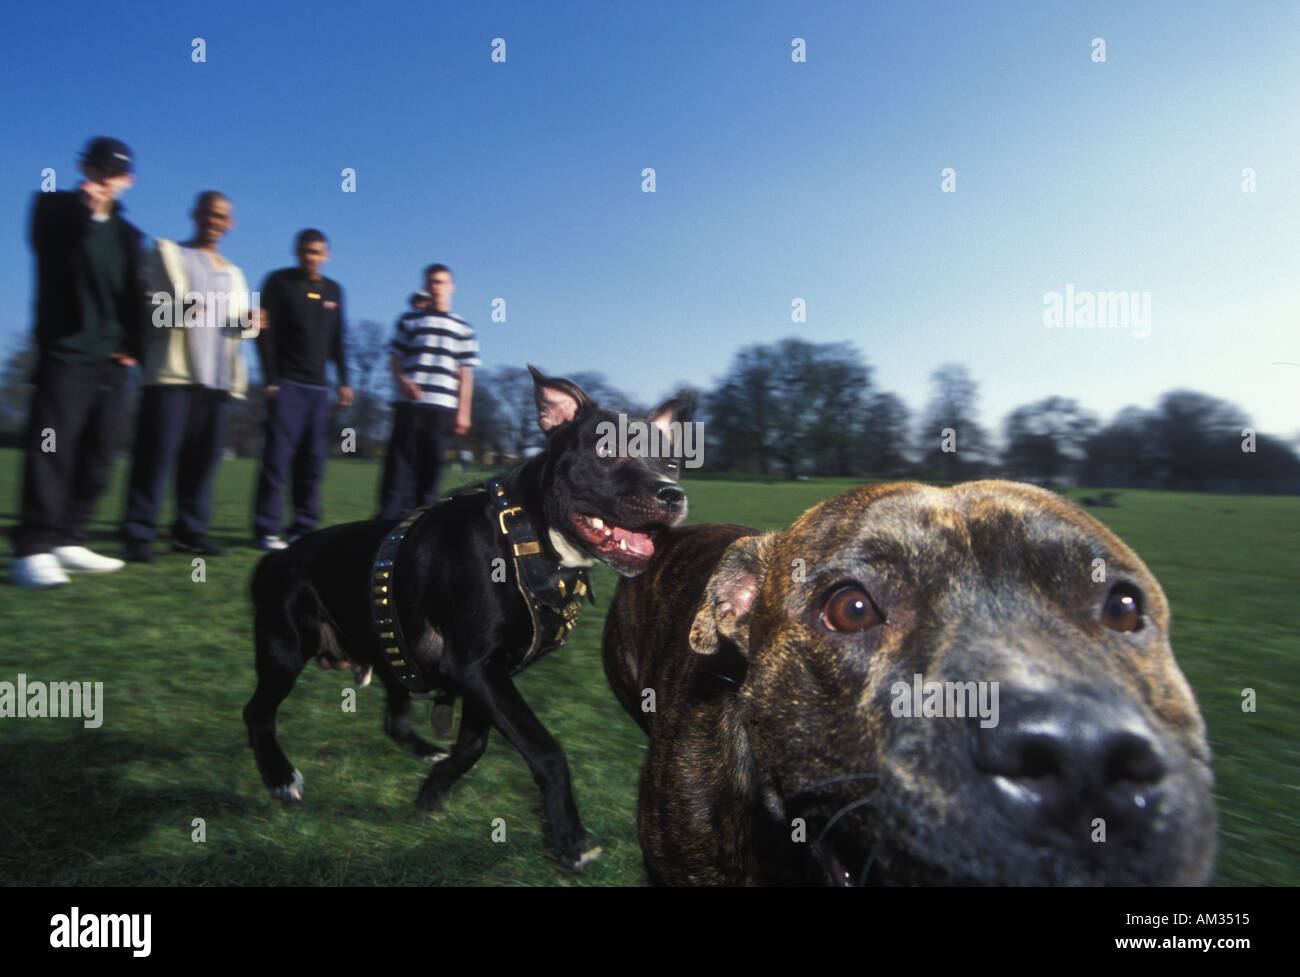 Staffordshire Pitbull Terriers and their owners in the park - Stock Image